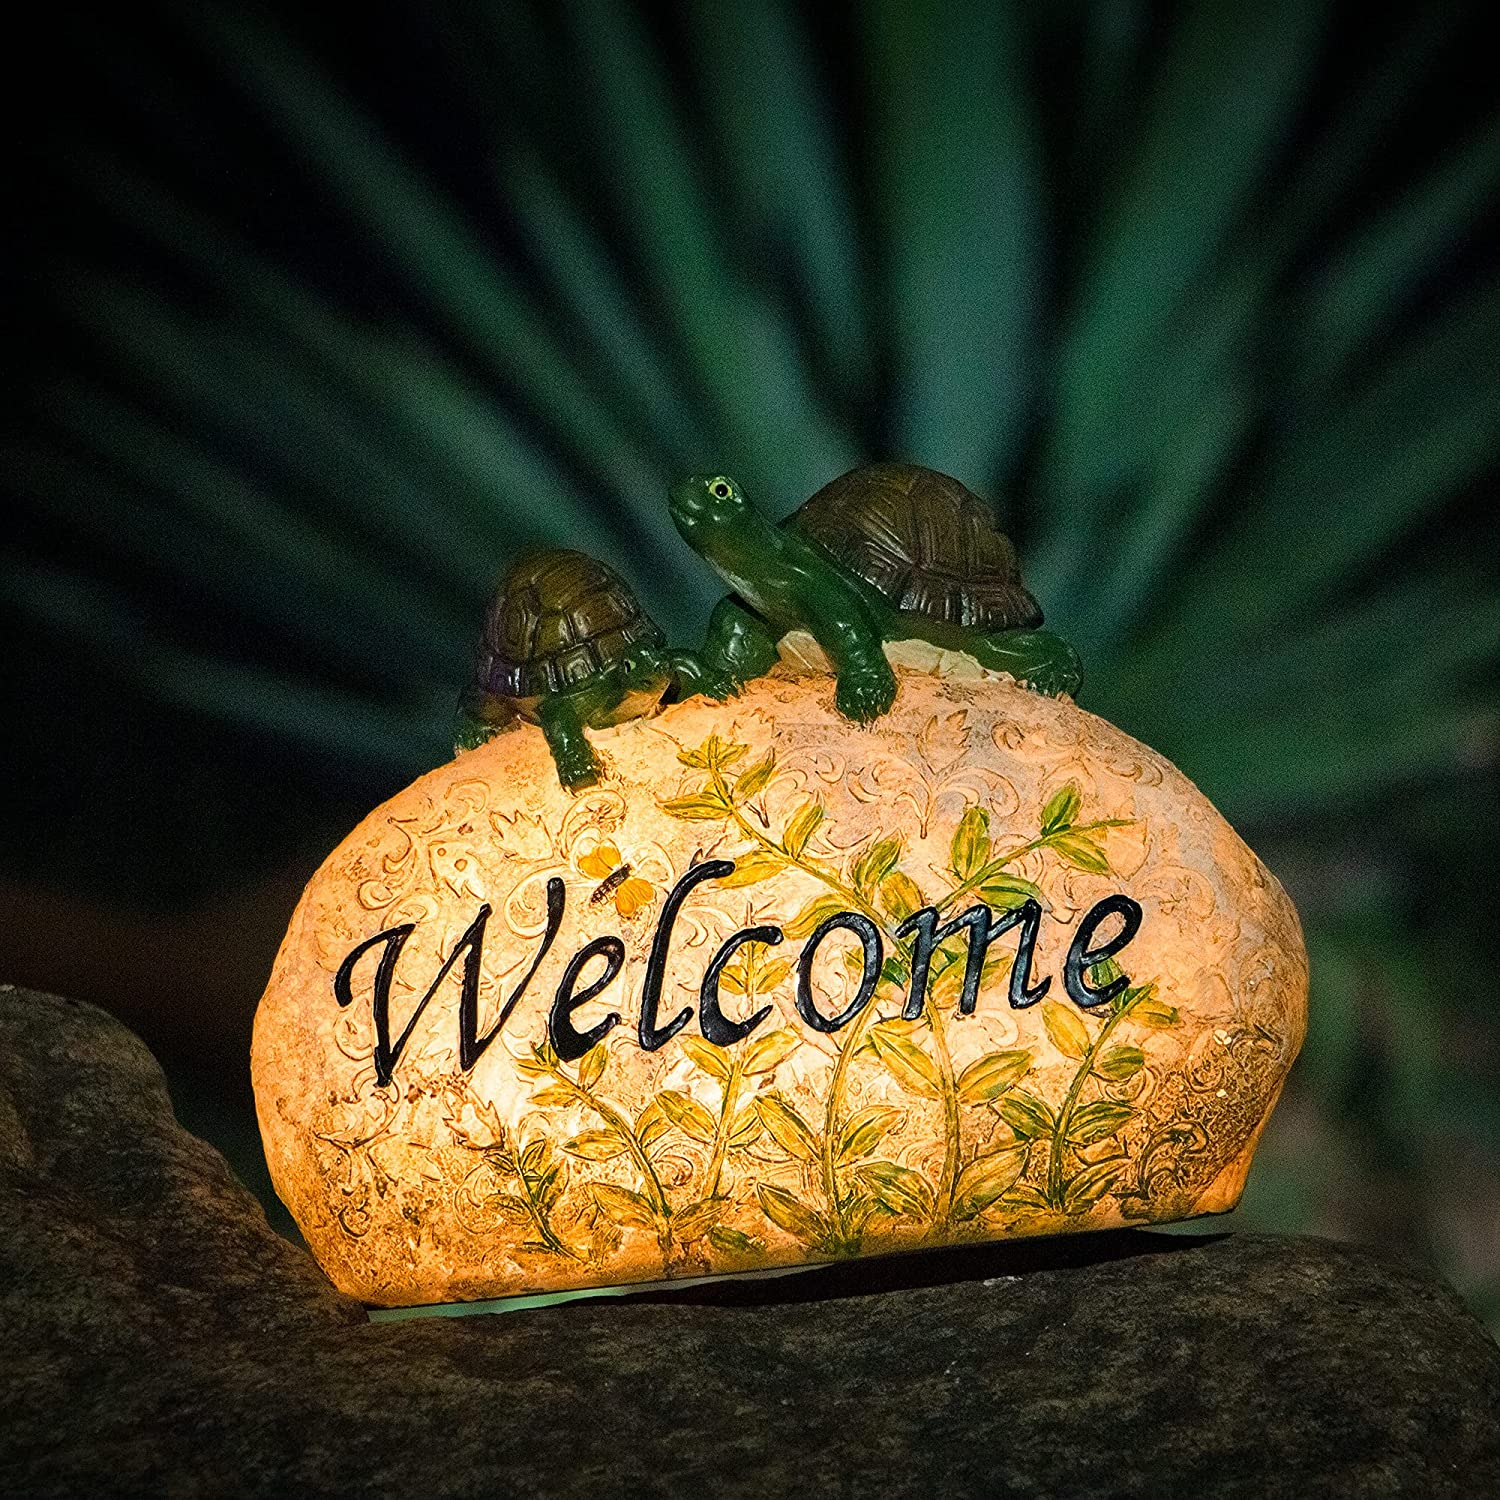 Garden Sculptures & Statues for Outdoor Patio Décor Cute Tortoise Standing on A Glowing Stone with Solar LED Welcome Sign for Garden Art Yard Decorations Perfect Outdoor Table Decor Gift